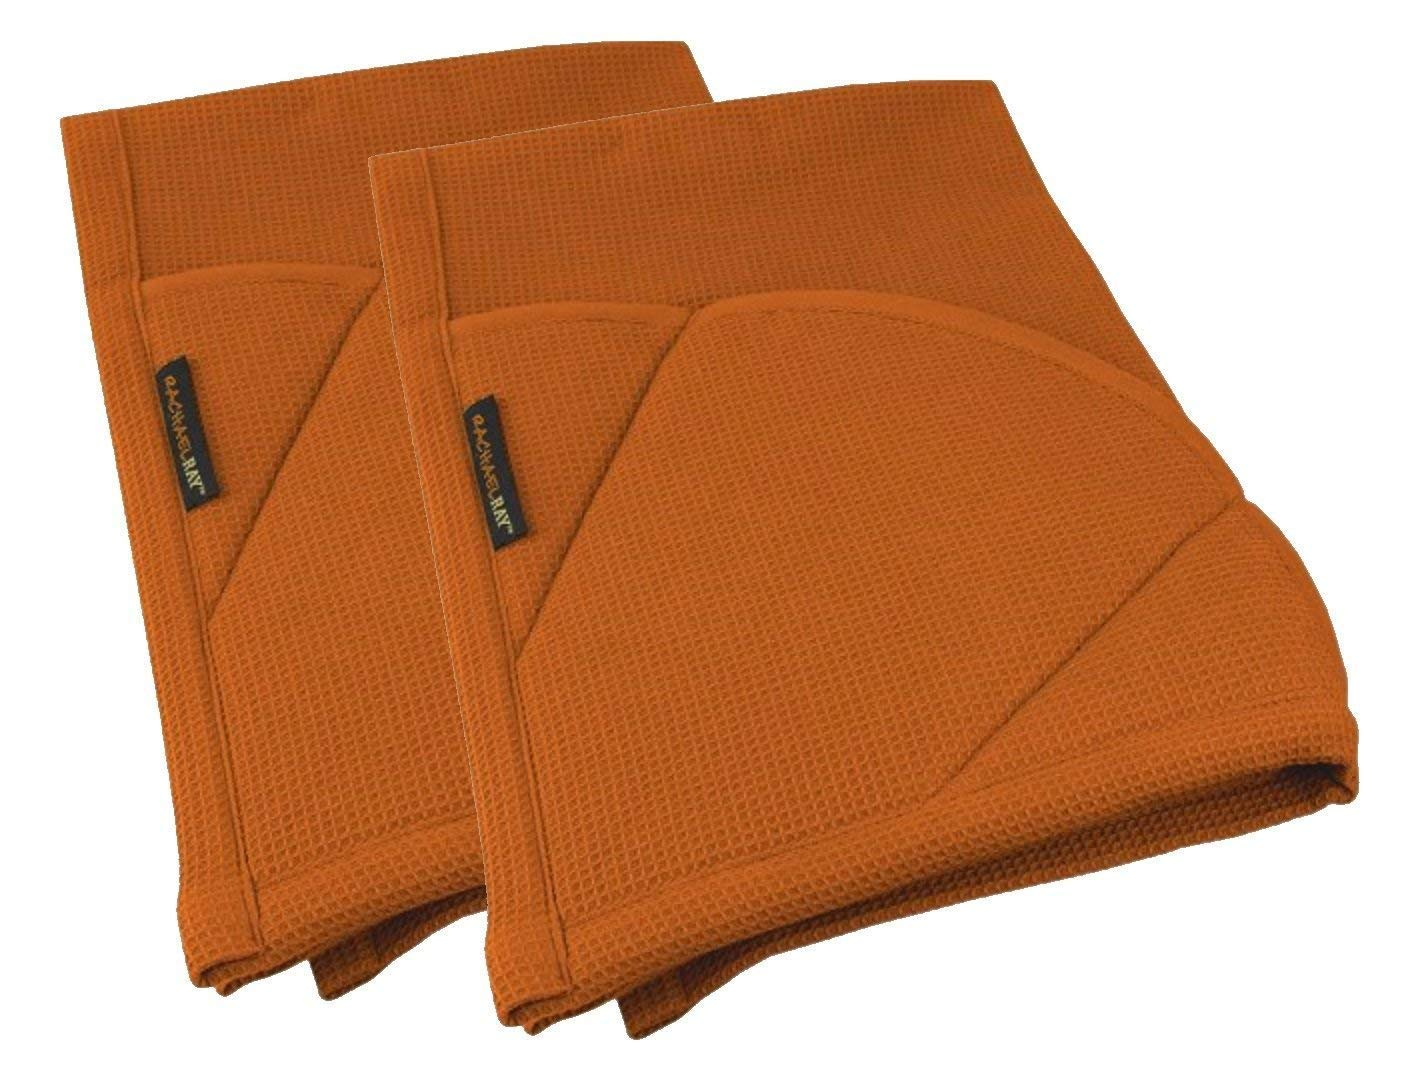 Rachael Ray Multifunctional 2-in-1 Moppine, Ultra Absorbent Kitchen Towel & Heat Resistant Pot Holder Burnt Orange (Pack of 2)